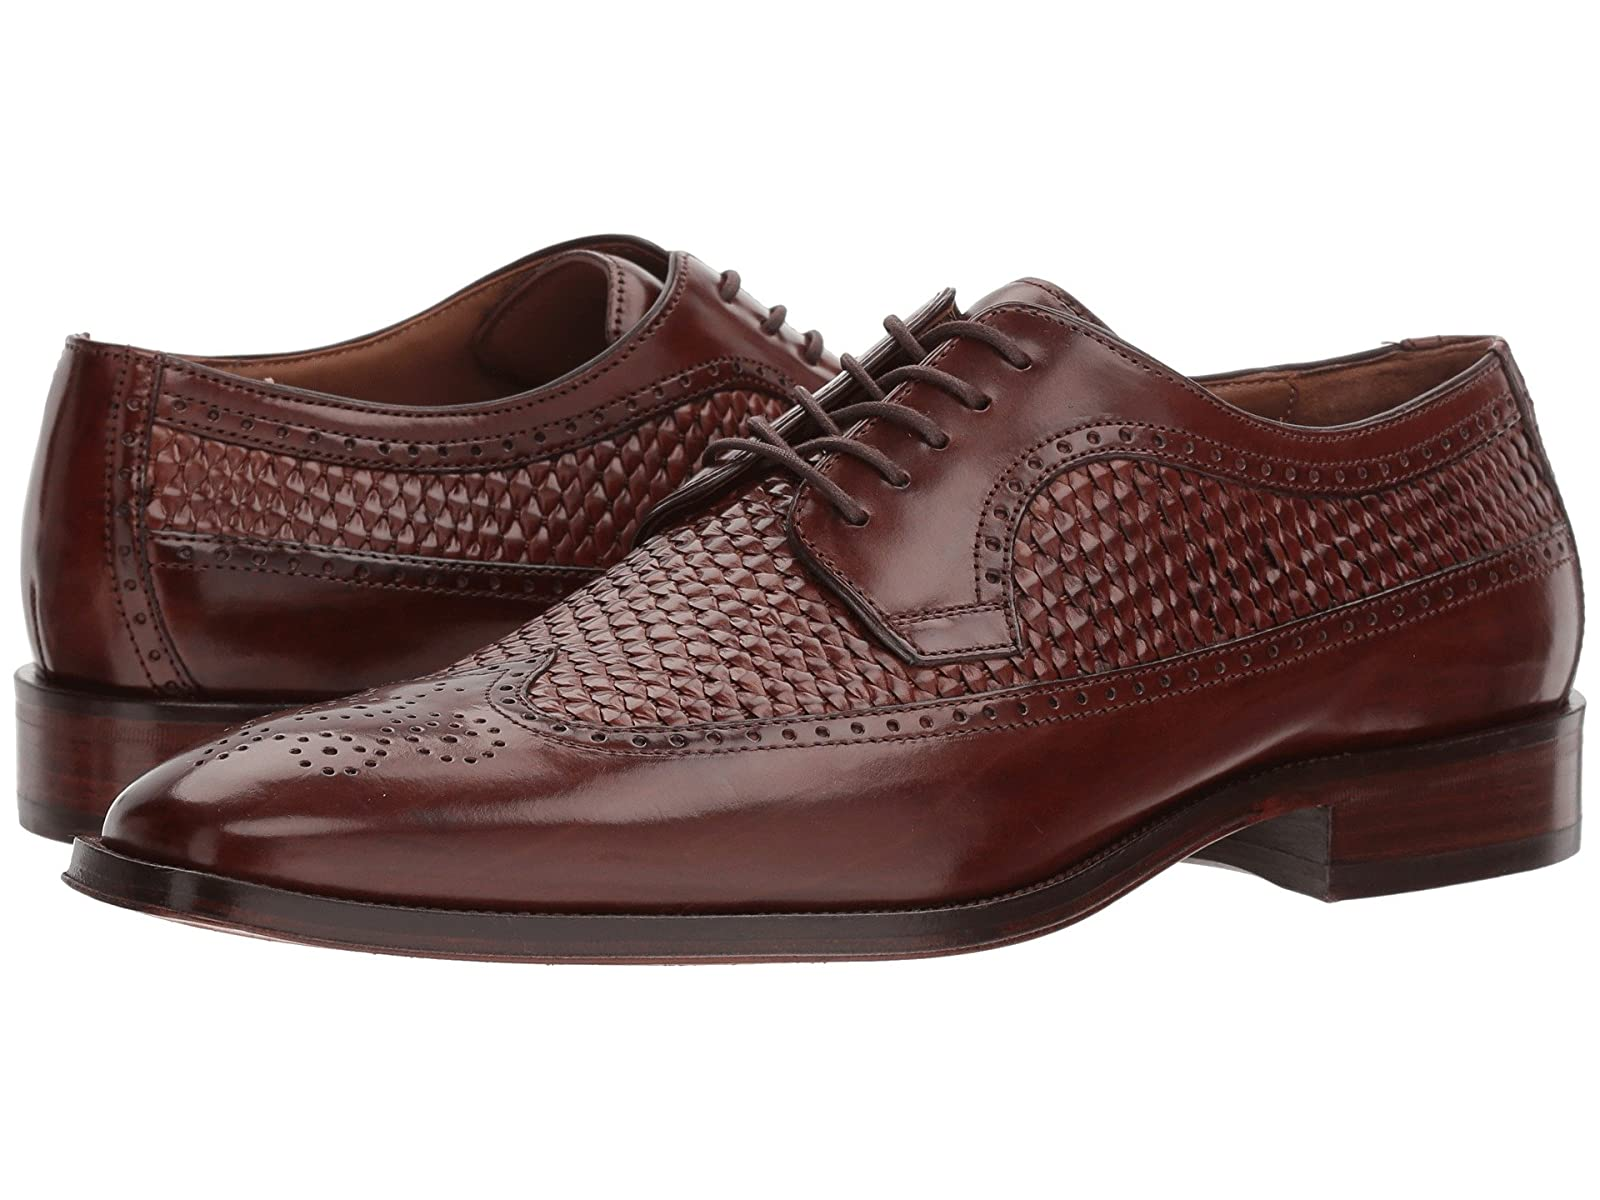 Johnston & Murphy Boydstun Woven Dress Wingtip OxfordAtmospheric grades have affordable shoes